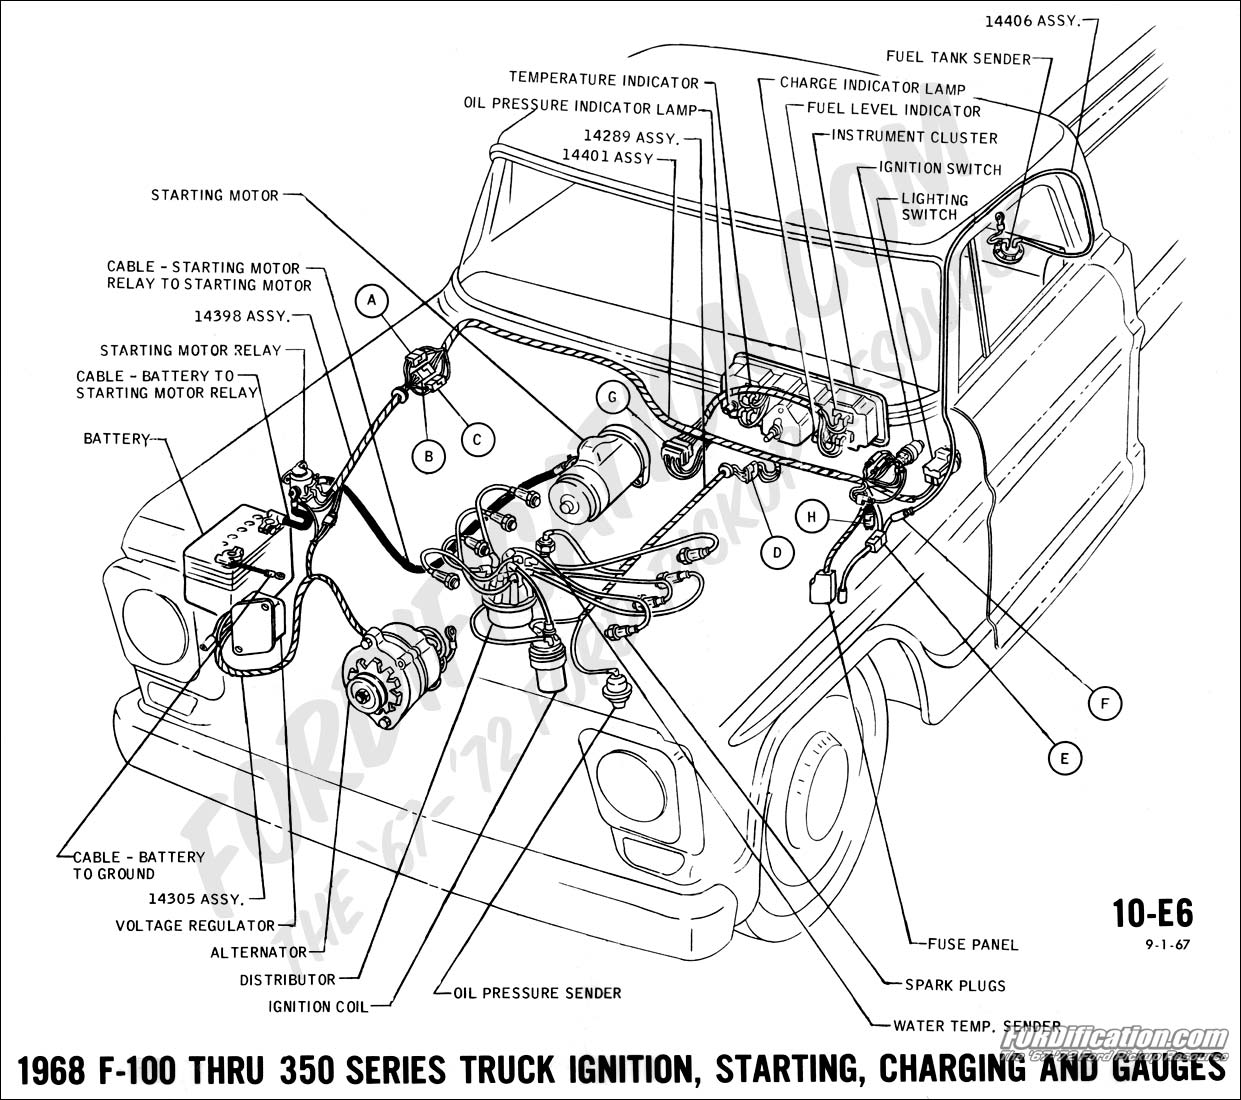 334 also 3 Prong Plug Wiring Diagram Flasher as well Schematics h also 385289 65 Brake Pedal Diagram moreover 65 73 Mustang Wiper Parts 247. on 95 mustang wiring diagram